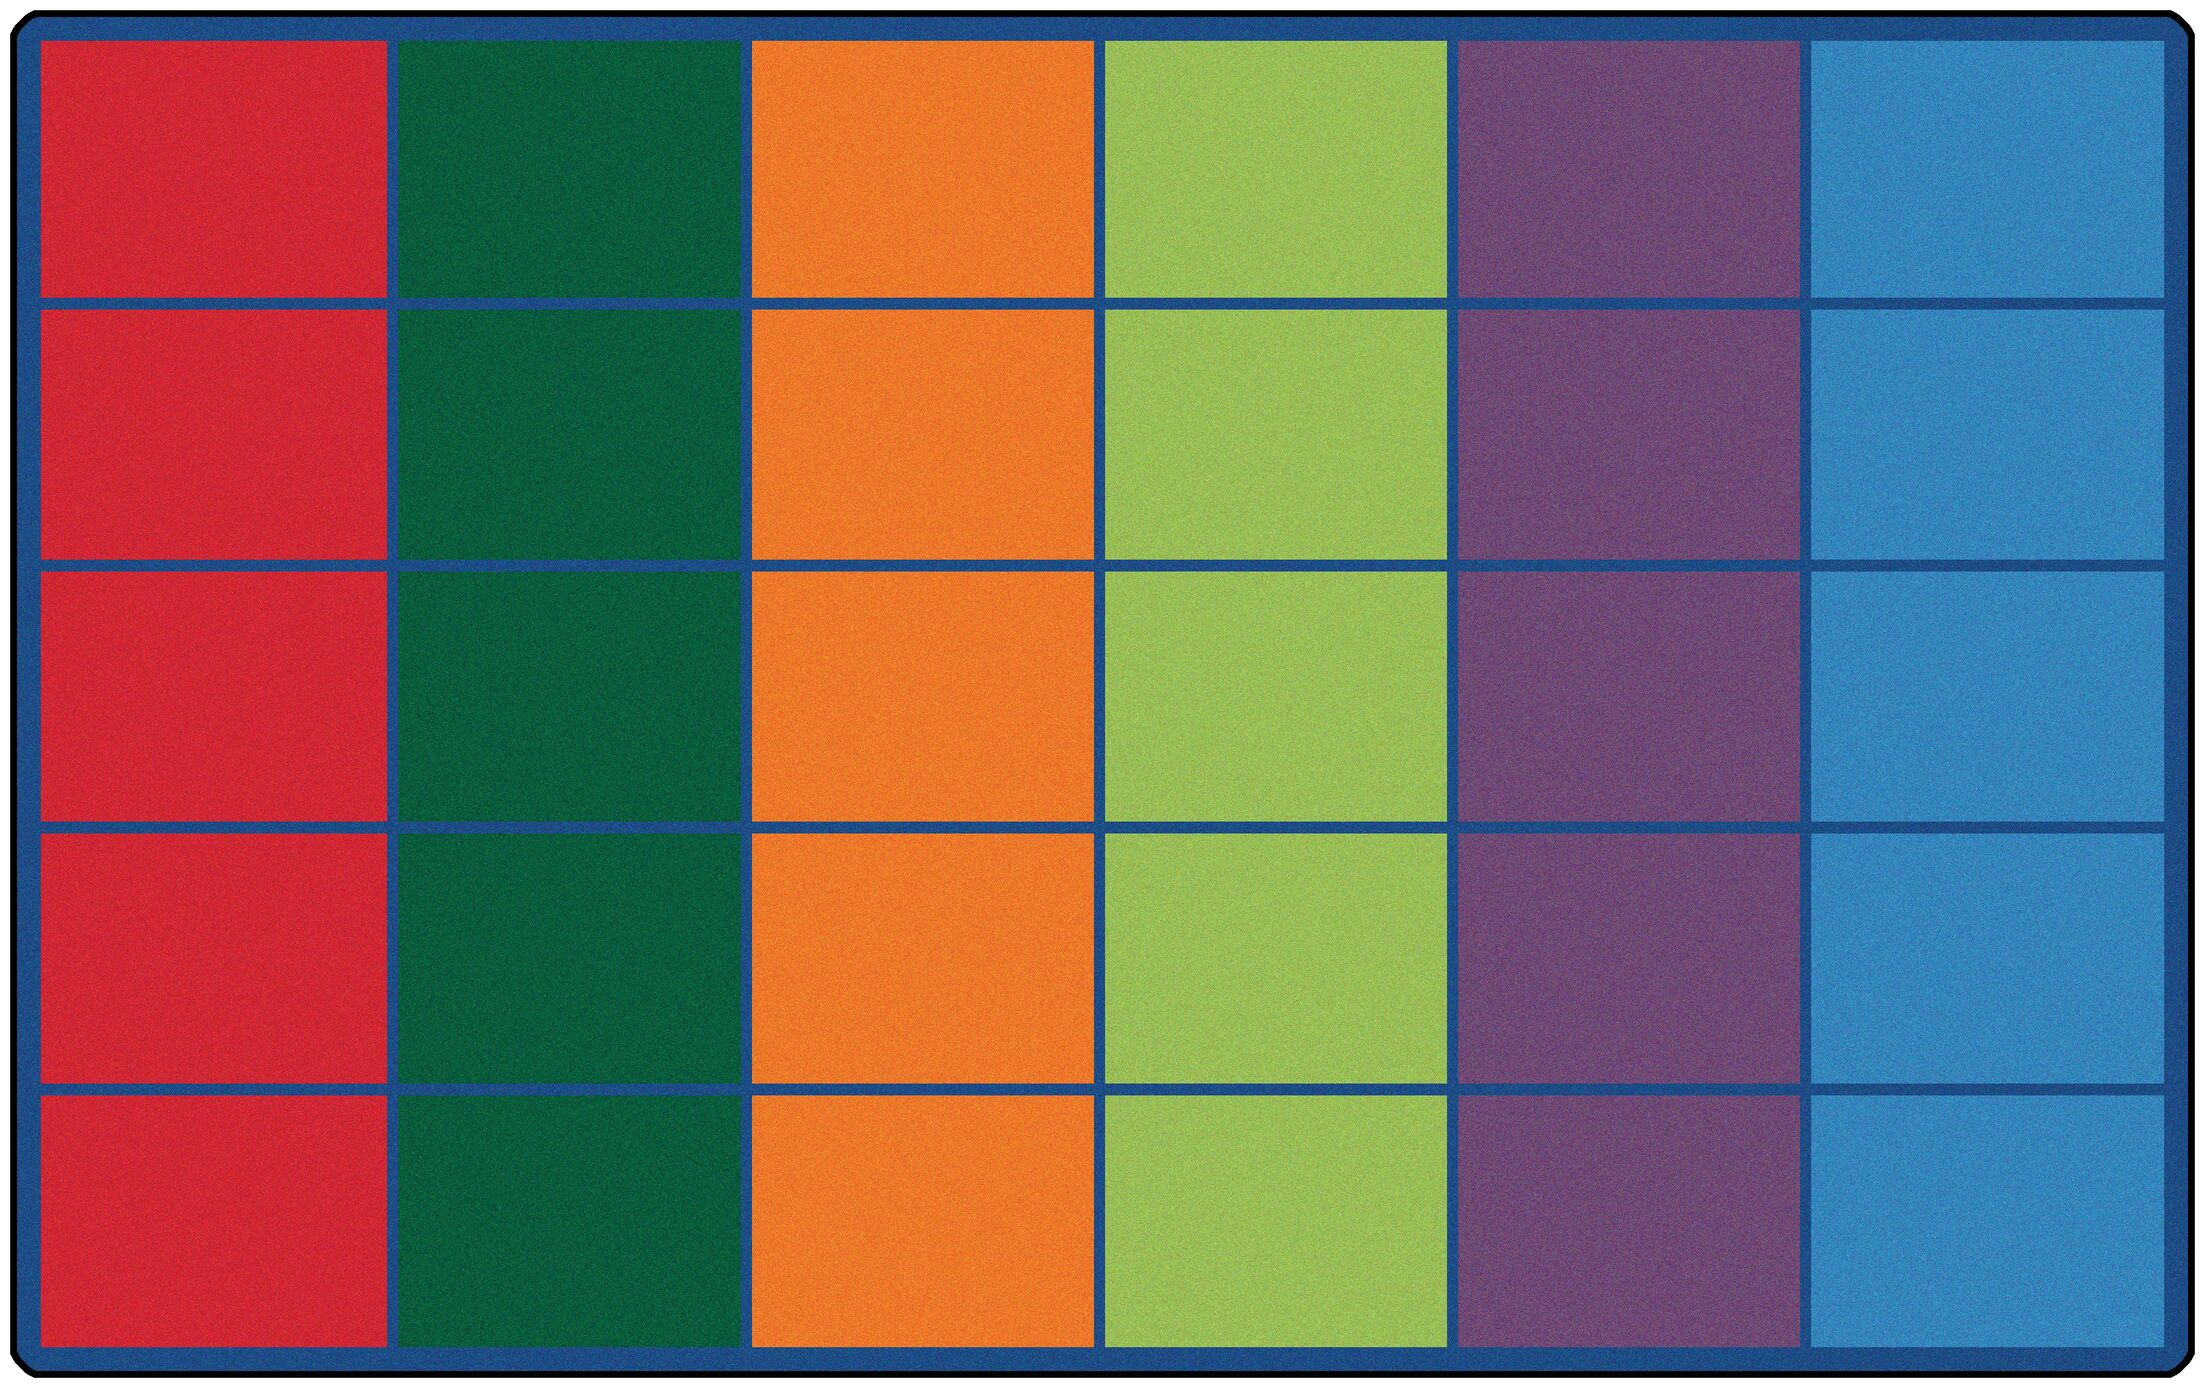 Emmanuelle Colorful Rows Seating Area Rug Number of Square Spaces: 30